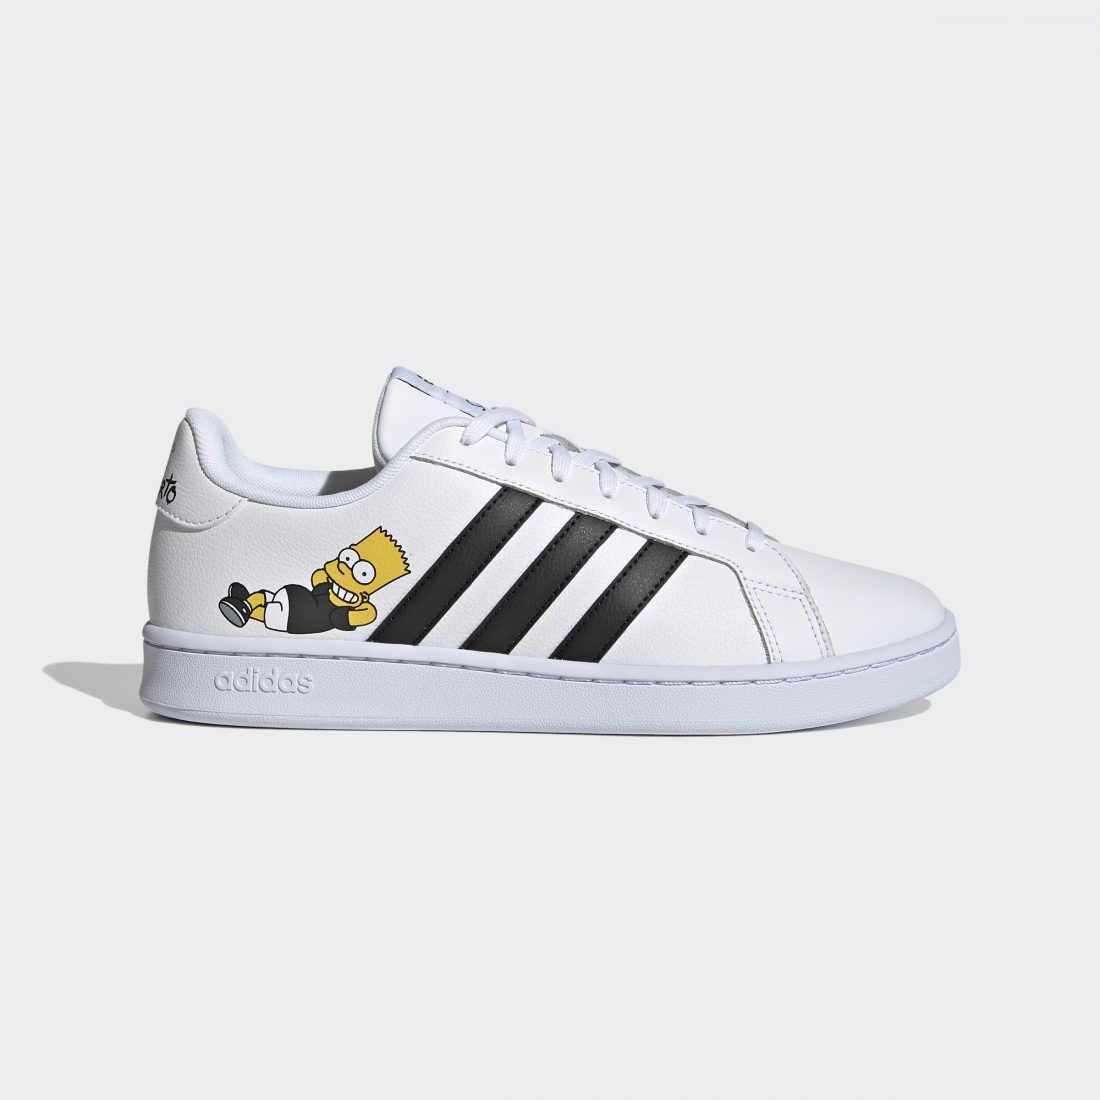 The Simpsons x adidas Grand Court